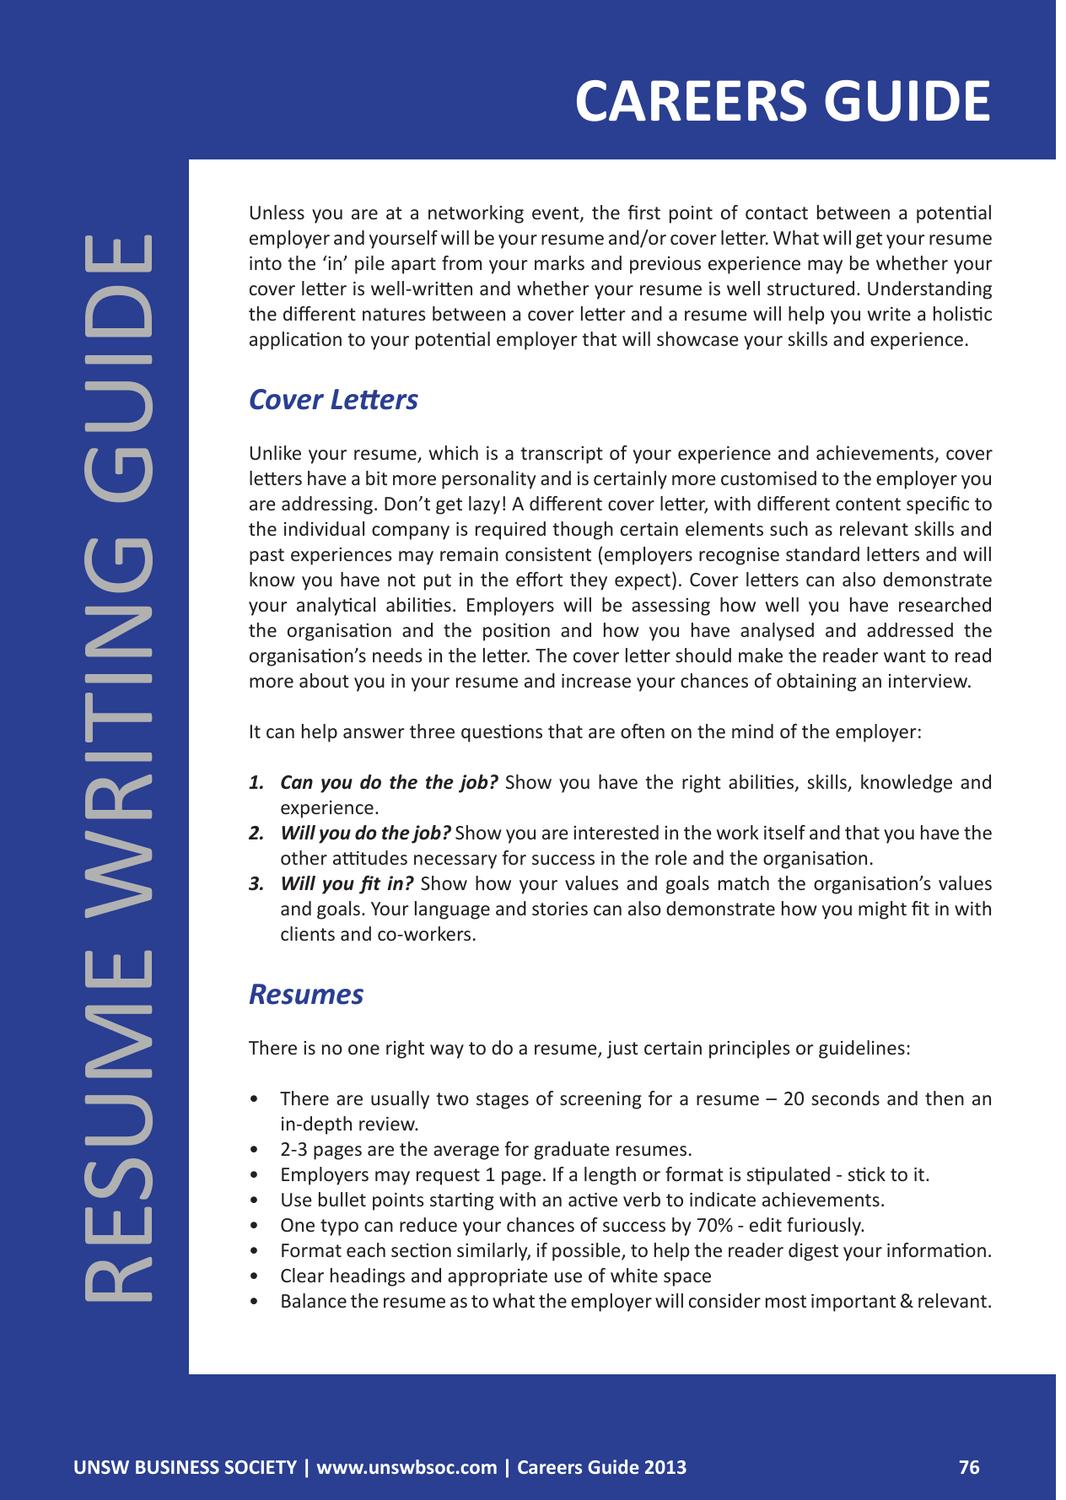 Unsw Cover Letter Unsw Bsoc Careers Guide 2013 By Unsw Business Society Issuu